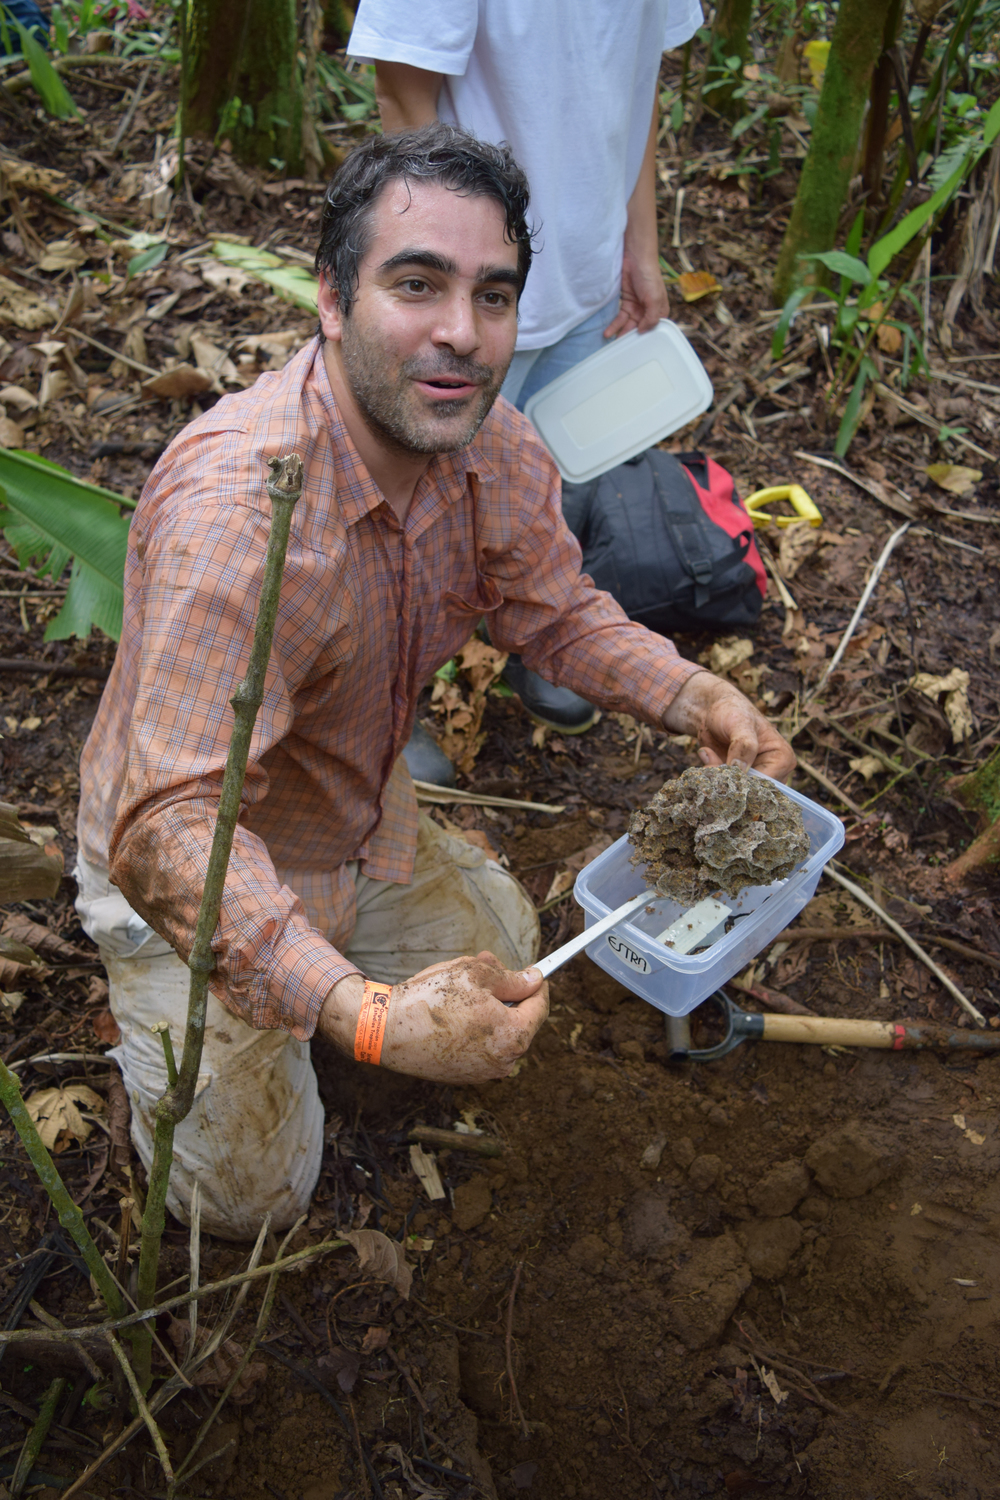 Dr. Adrian Pinto, University of Costa Rica Adrian is our local knowledge and leaf cutter ant natural history expert. He can dig an entire leaf cutter ant nest with a tea spoon in 15 minutes or less, extracting fungal chambers all the way down. His work focuses on microbial associations with symbiotic fungi and biocontrol.